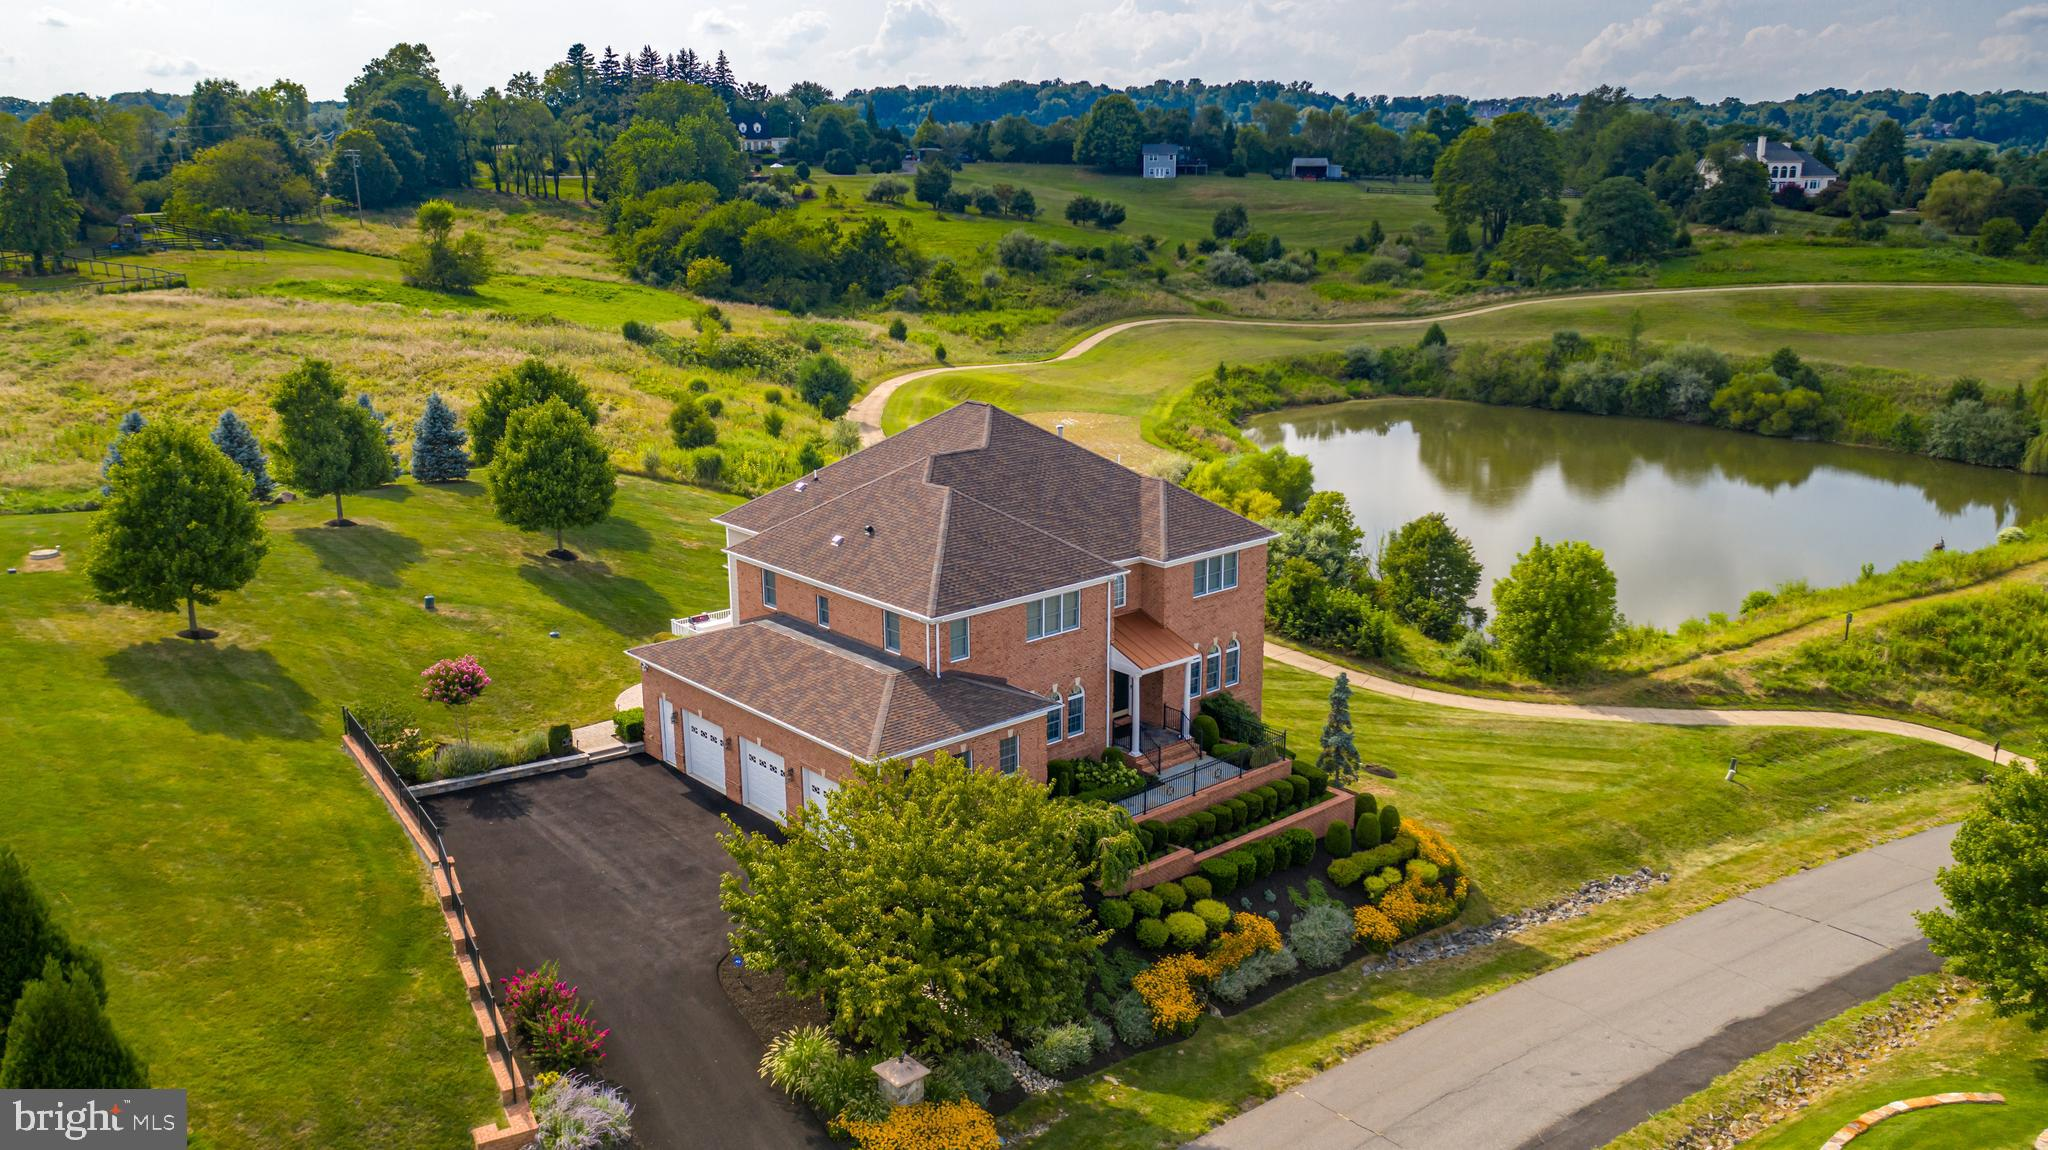 A stunning, stately home in the highly sought-after Beacon Hill neighborhood of Leesburg. A mature,